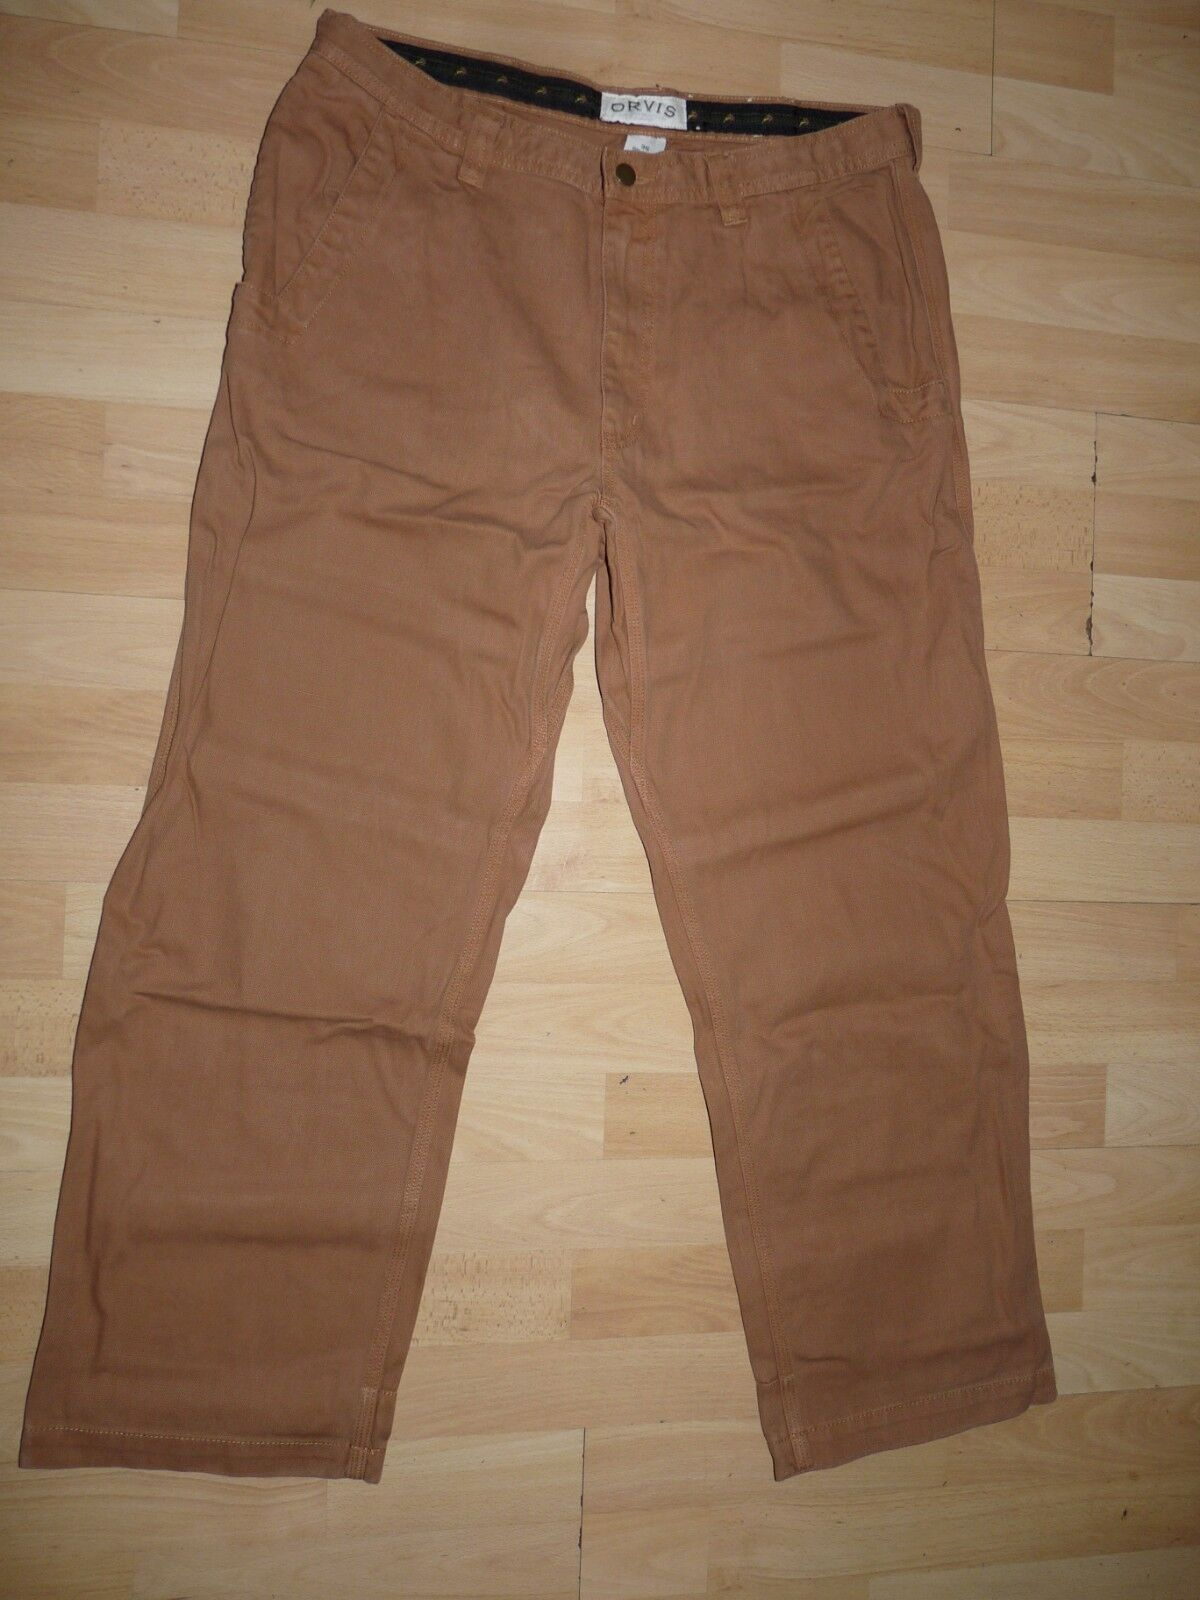 Authentic ORVIS NAVAJO canvas casual brown pants men's hunters trousers W36 (029